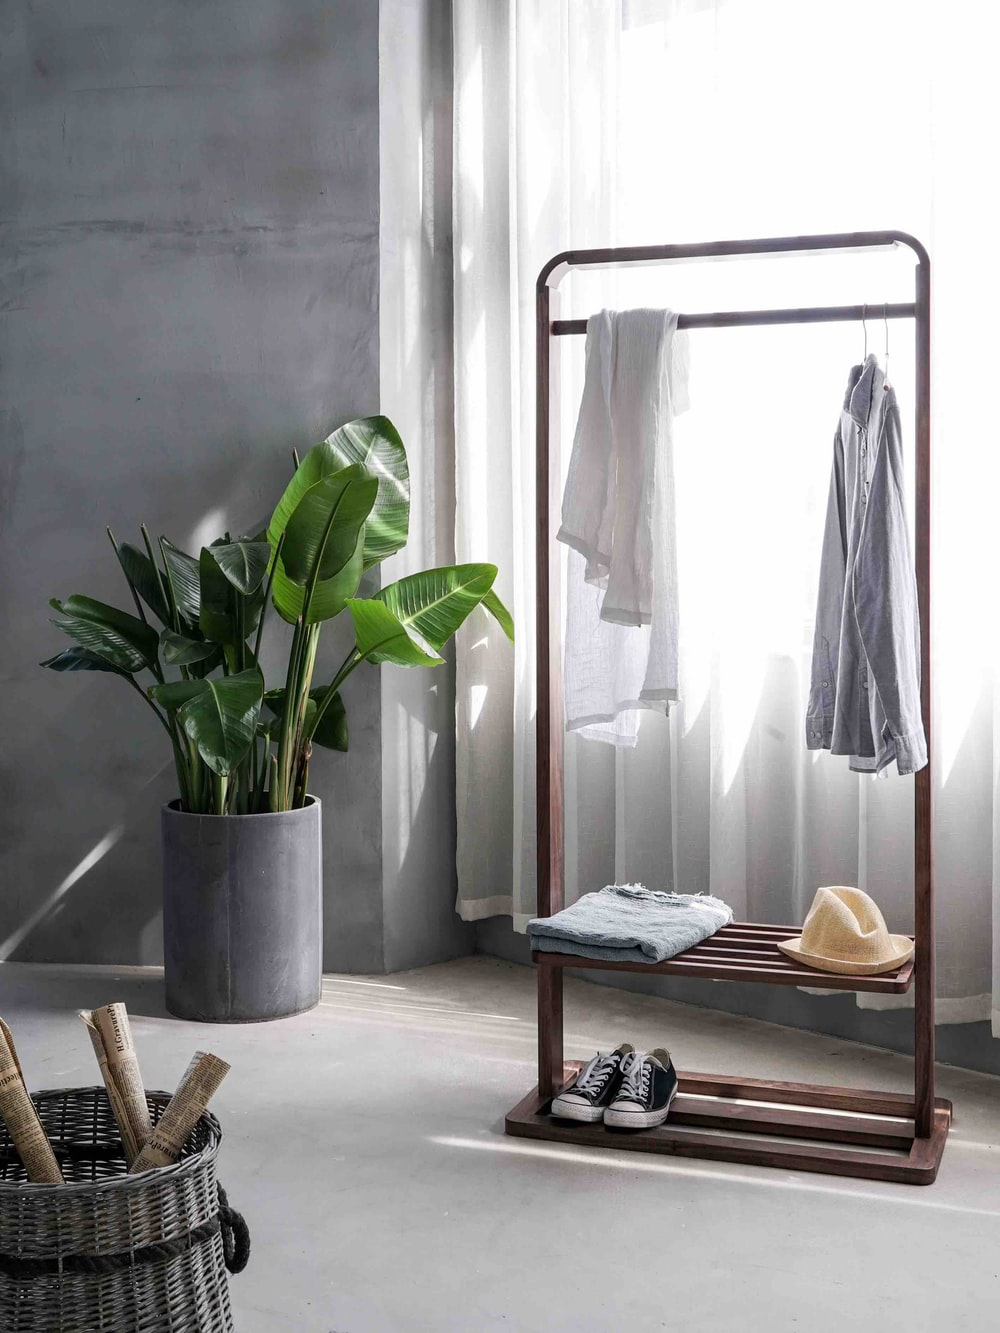 gray dress shirt hang on brown wooden rack in front of window with white curtain